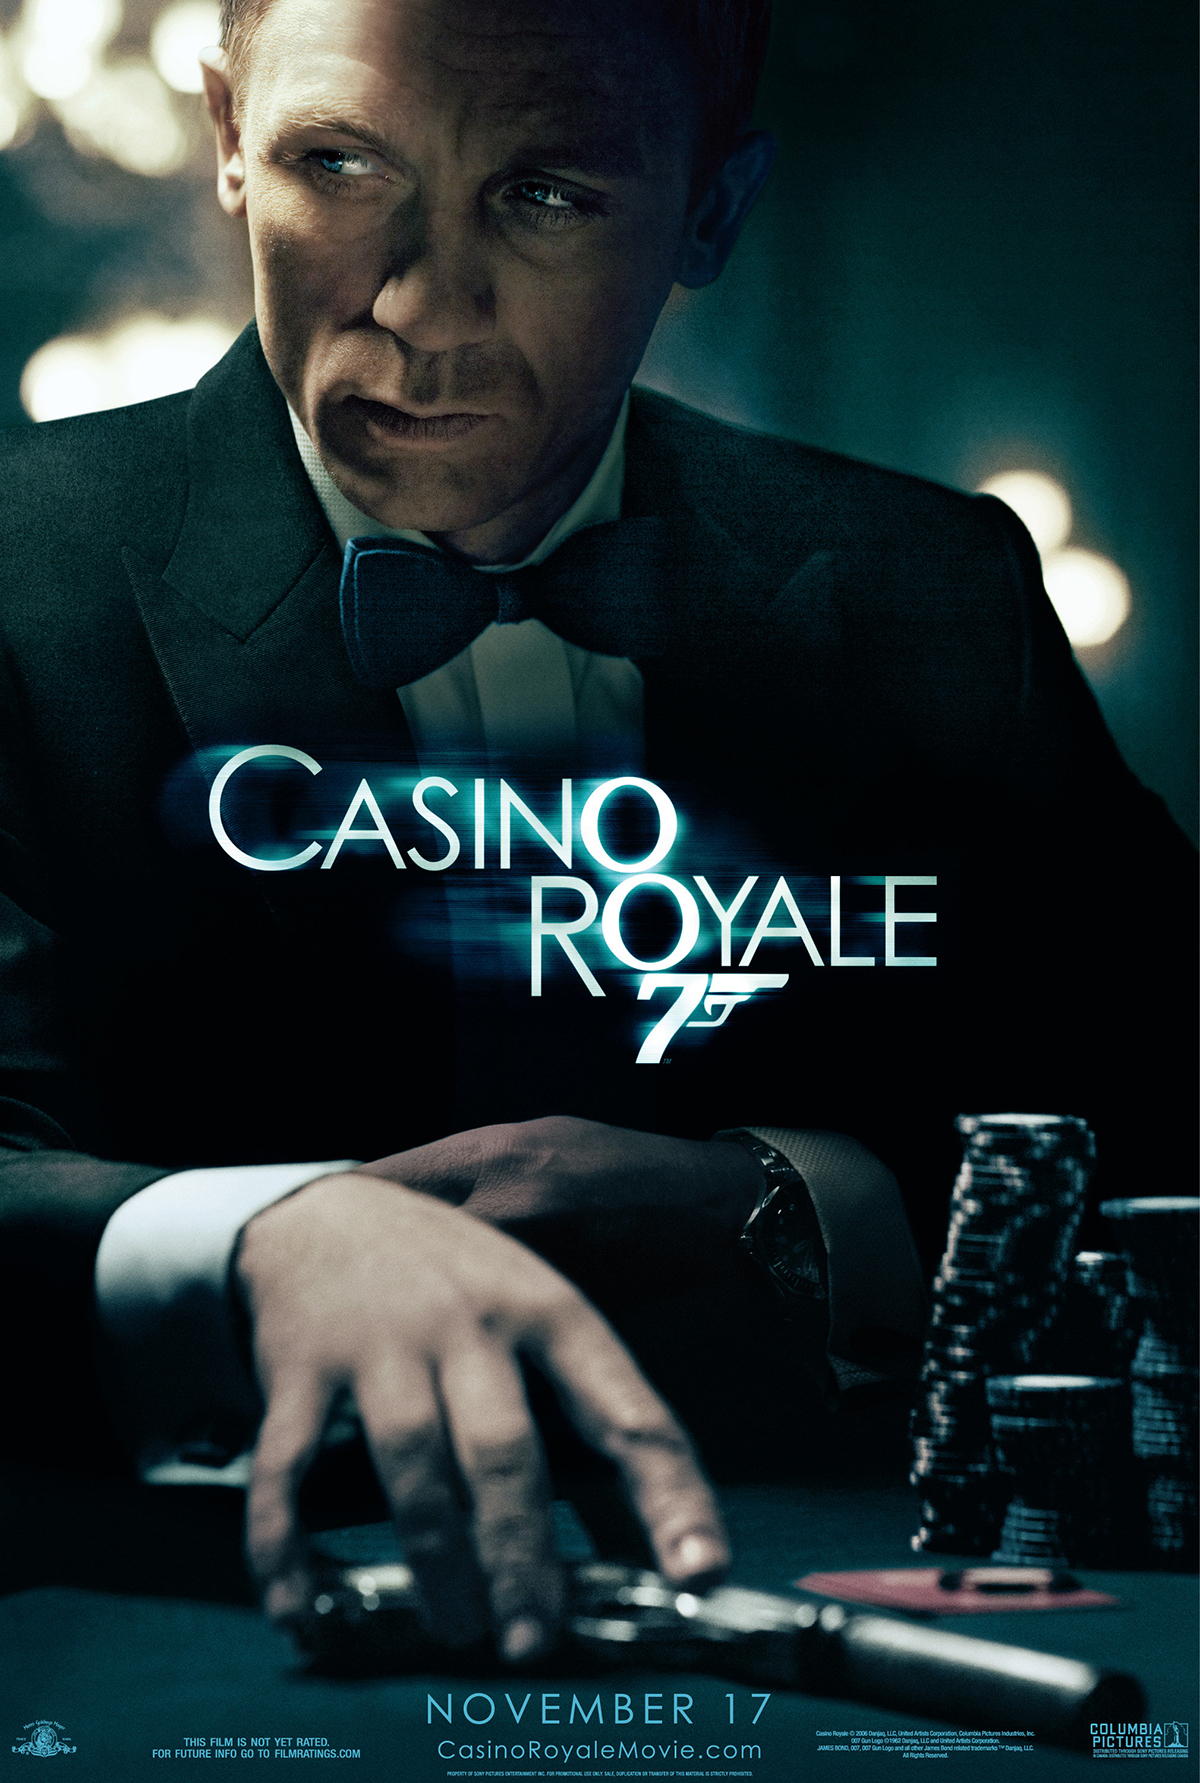 James bond casino royal streaming vf youwatch how to make money running a poker game